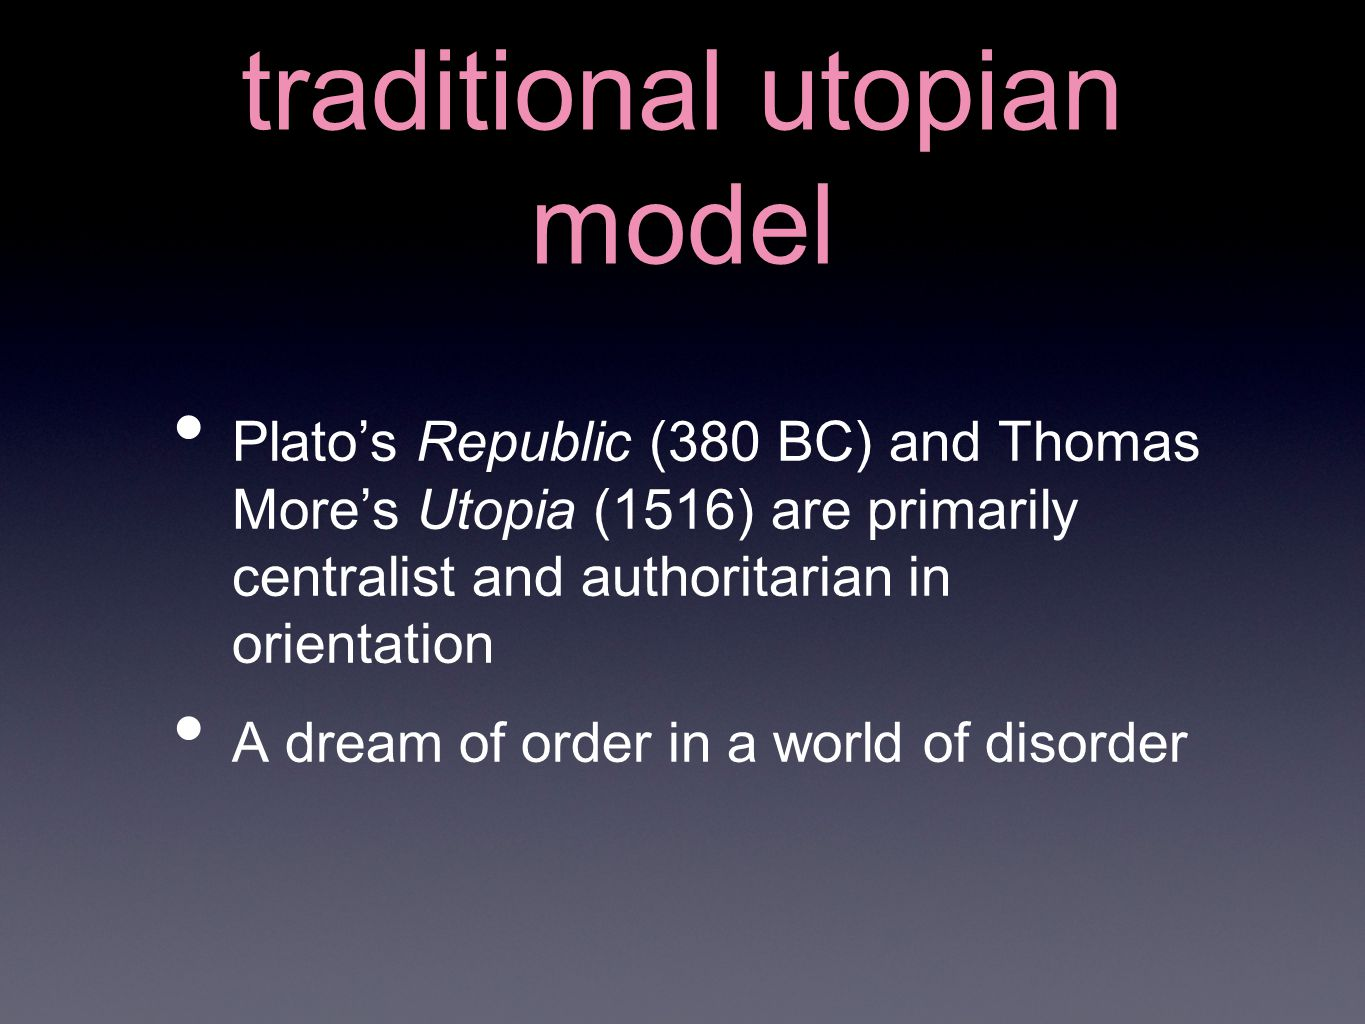 traditional utopian model Plato's Republic (380 BC) and Thomas More's Utopia (1516) are primarily centralist and authoritarian in orientation A dream of order in a world of disorder